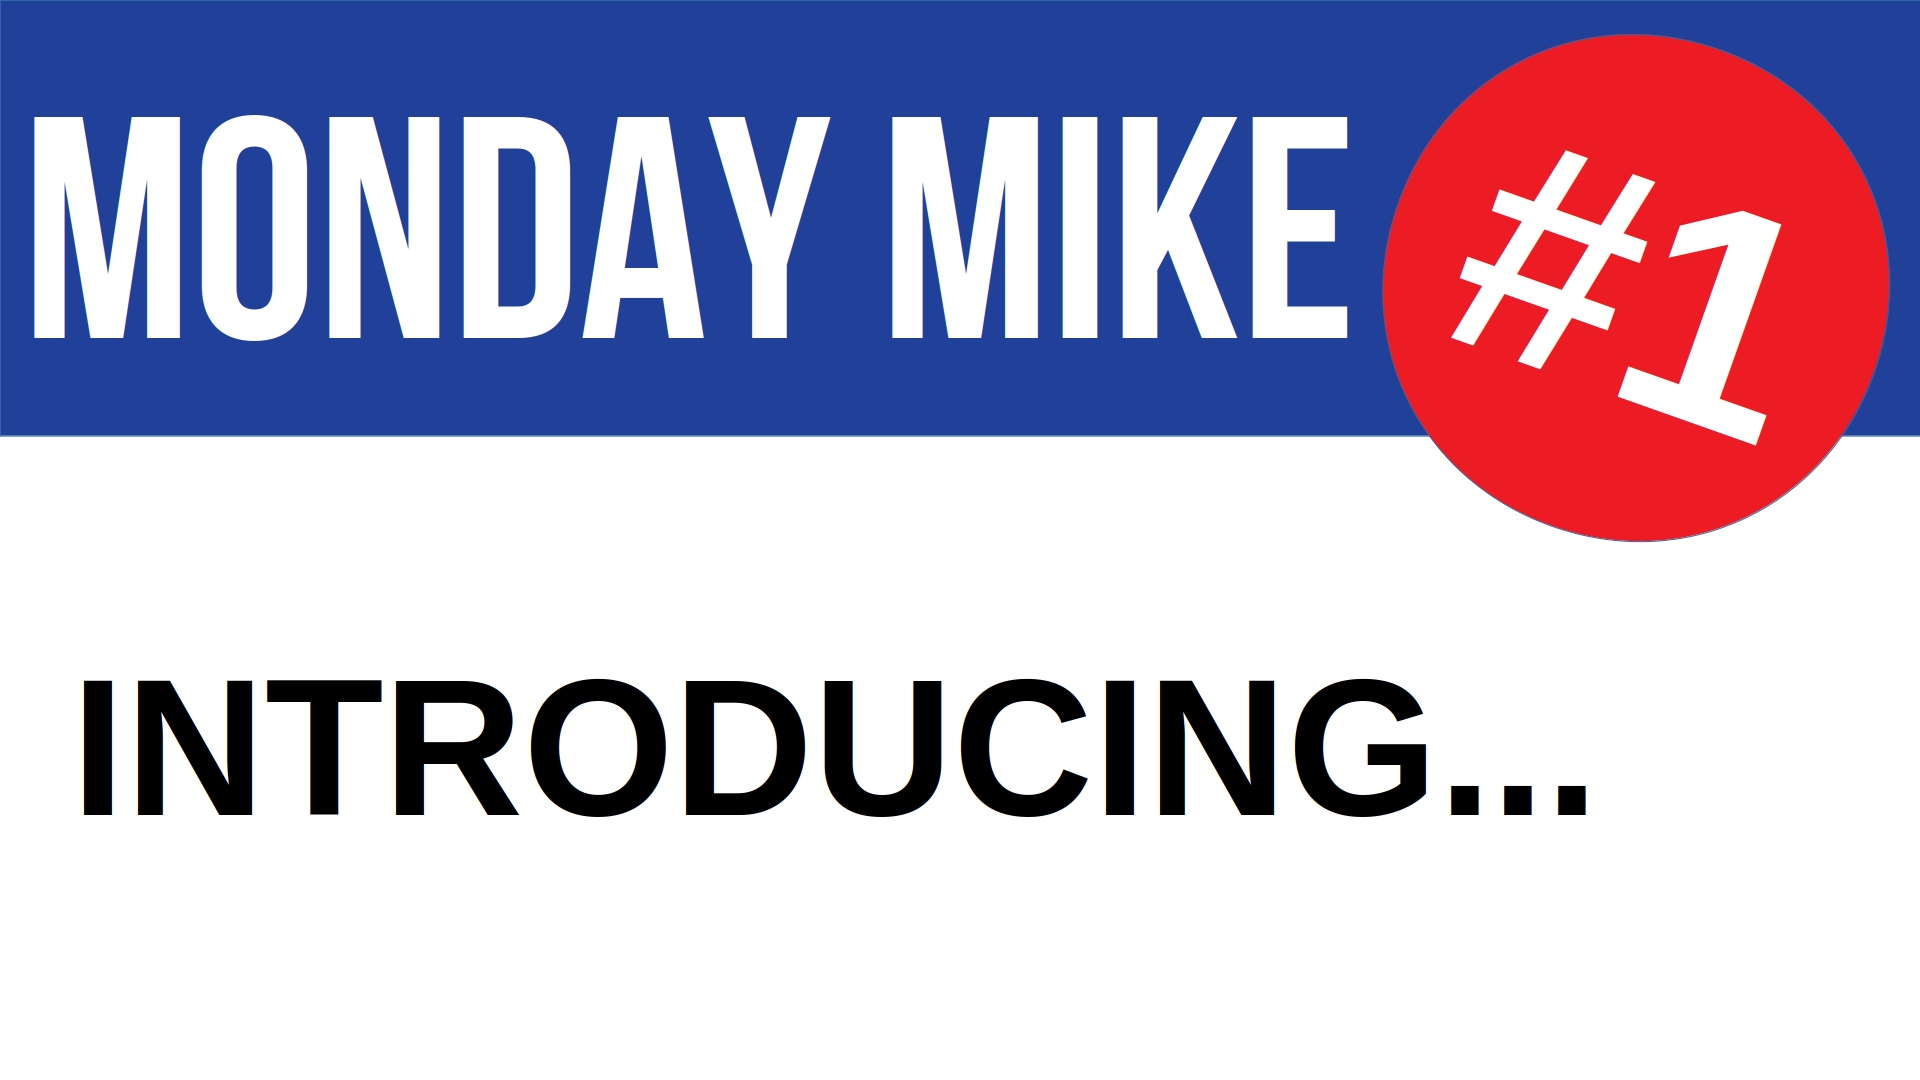 Monday Mike 1